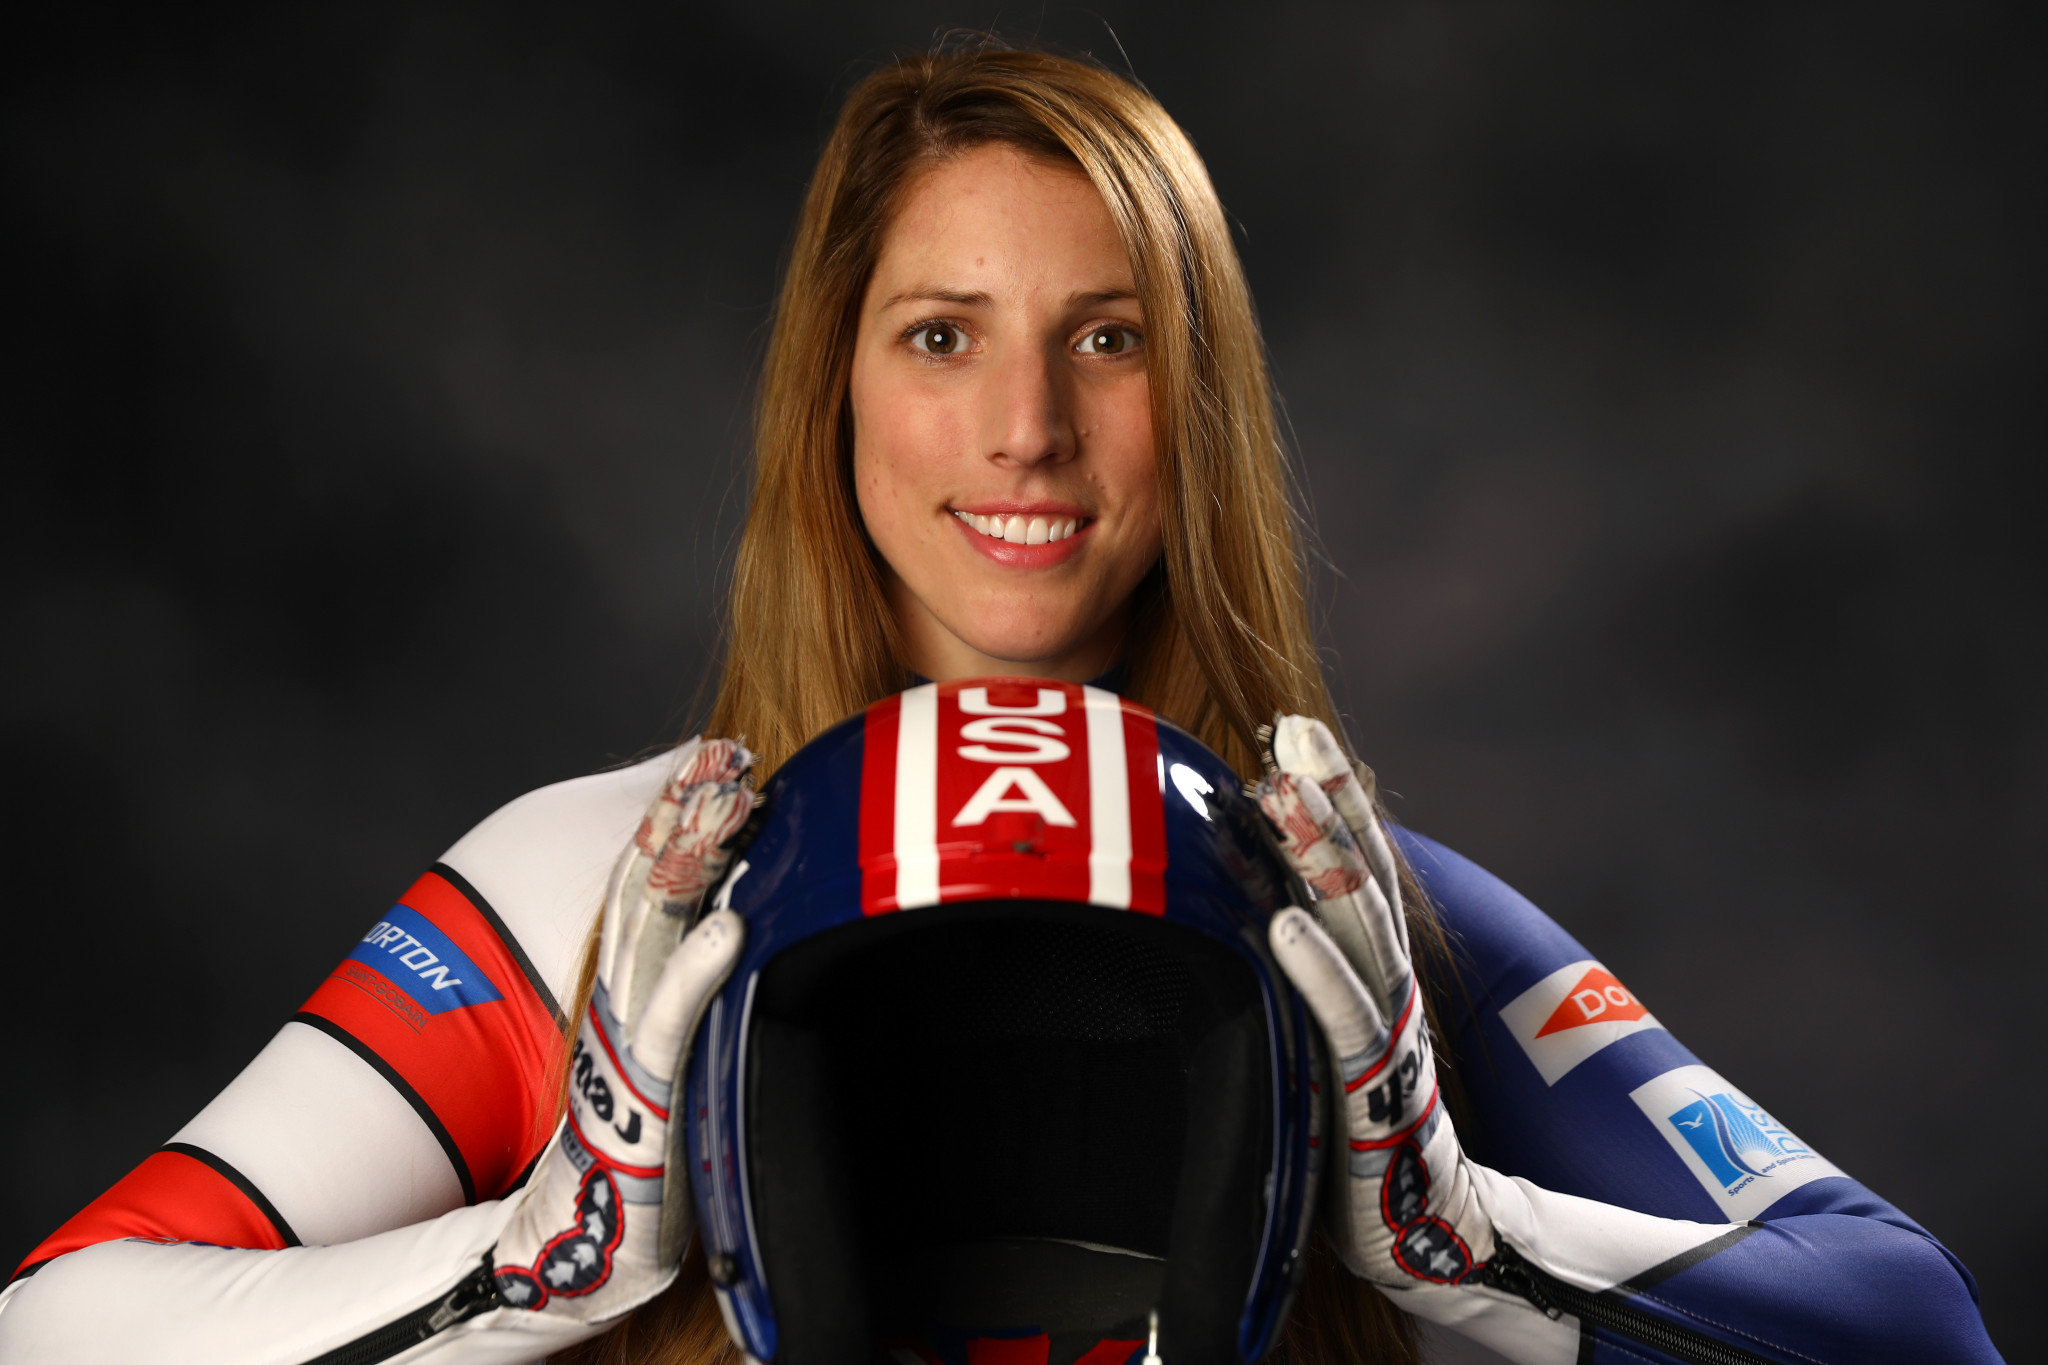 Team USA luger Erin Hamlin will be wearing Duluth Trading attire at next year's Winter Olympics in Pyeongchang ©Getty Images